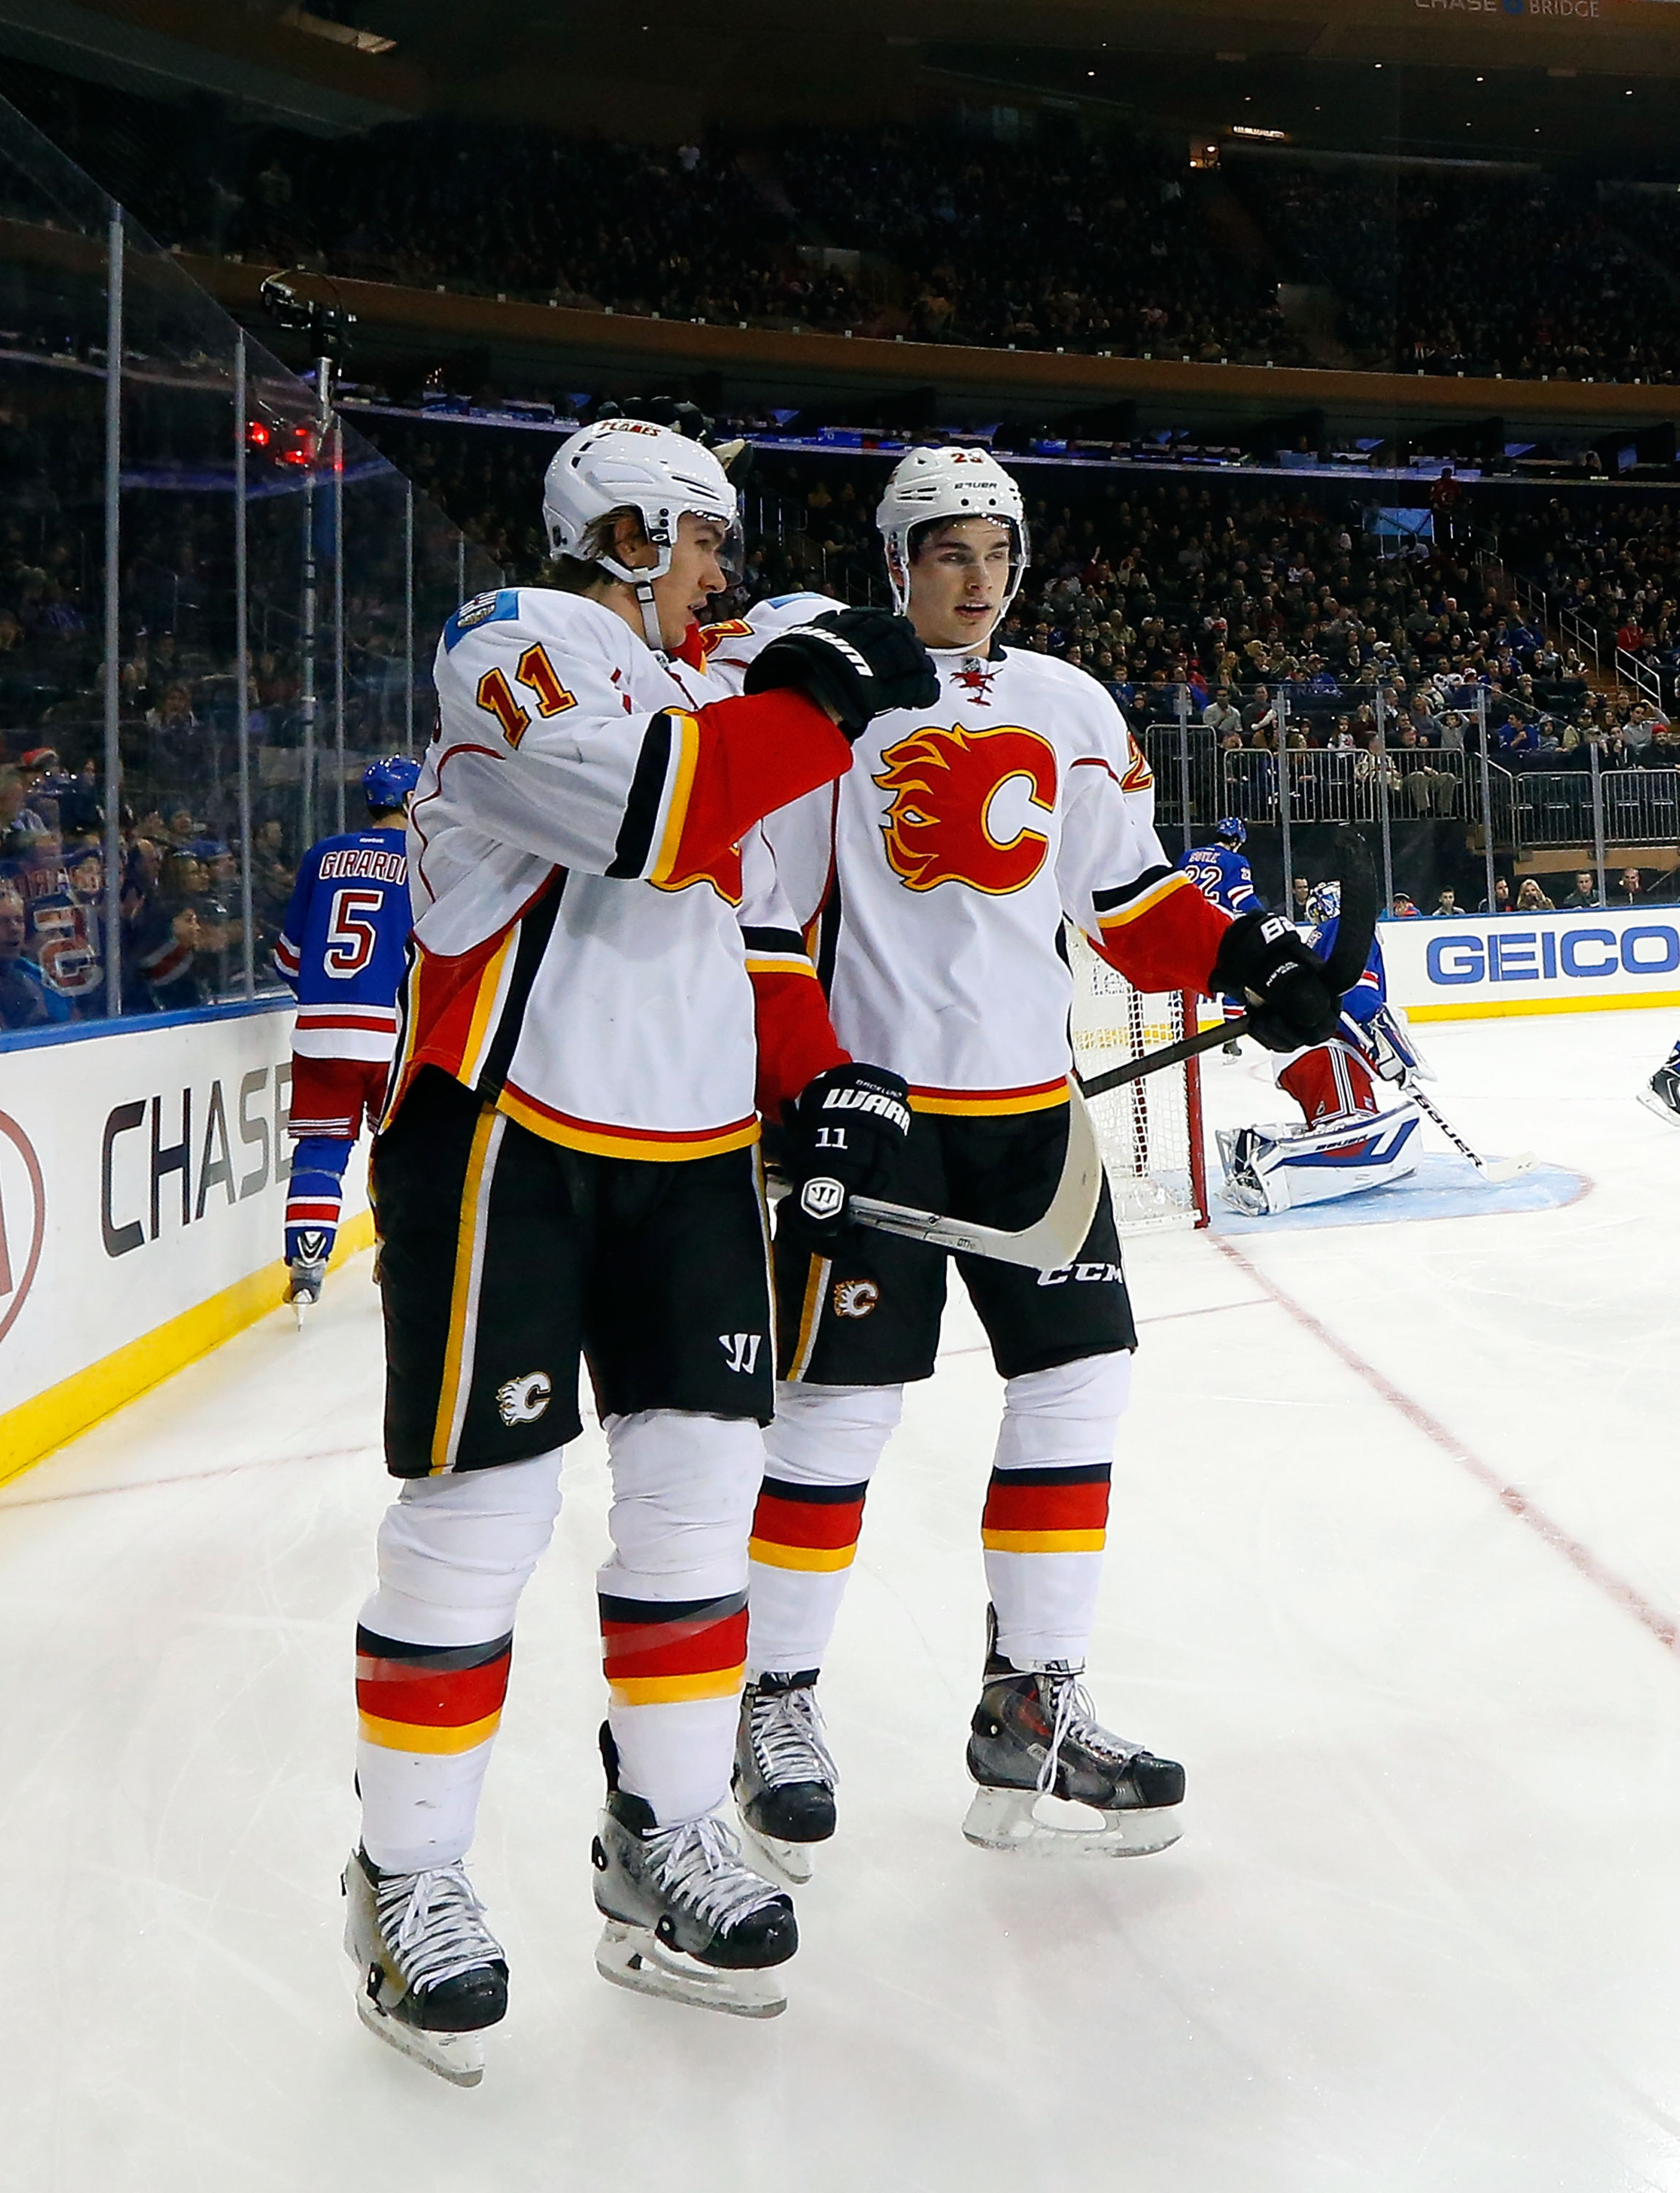 Backlund and Monahan played against each other today, so they weren't wearing the same uniform.